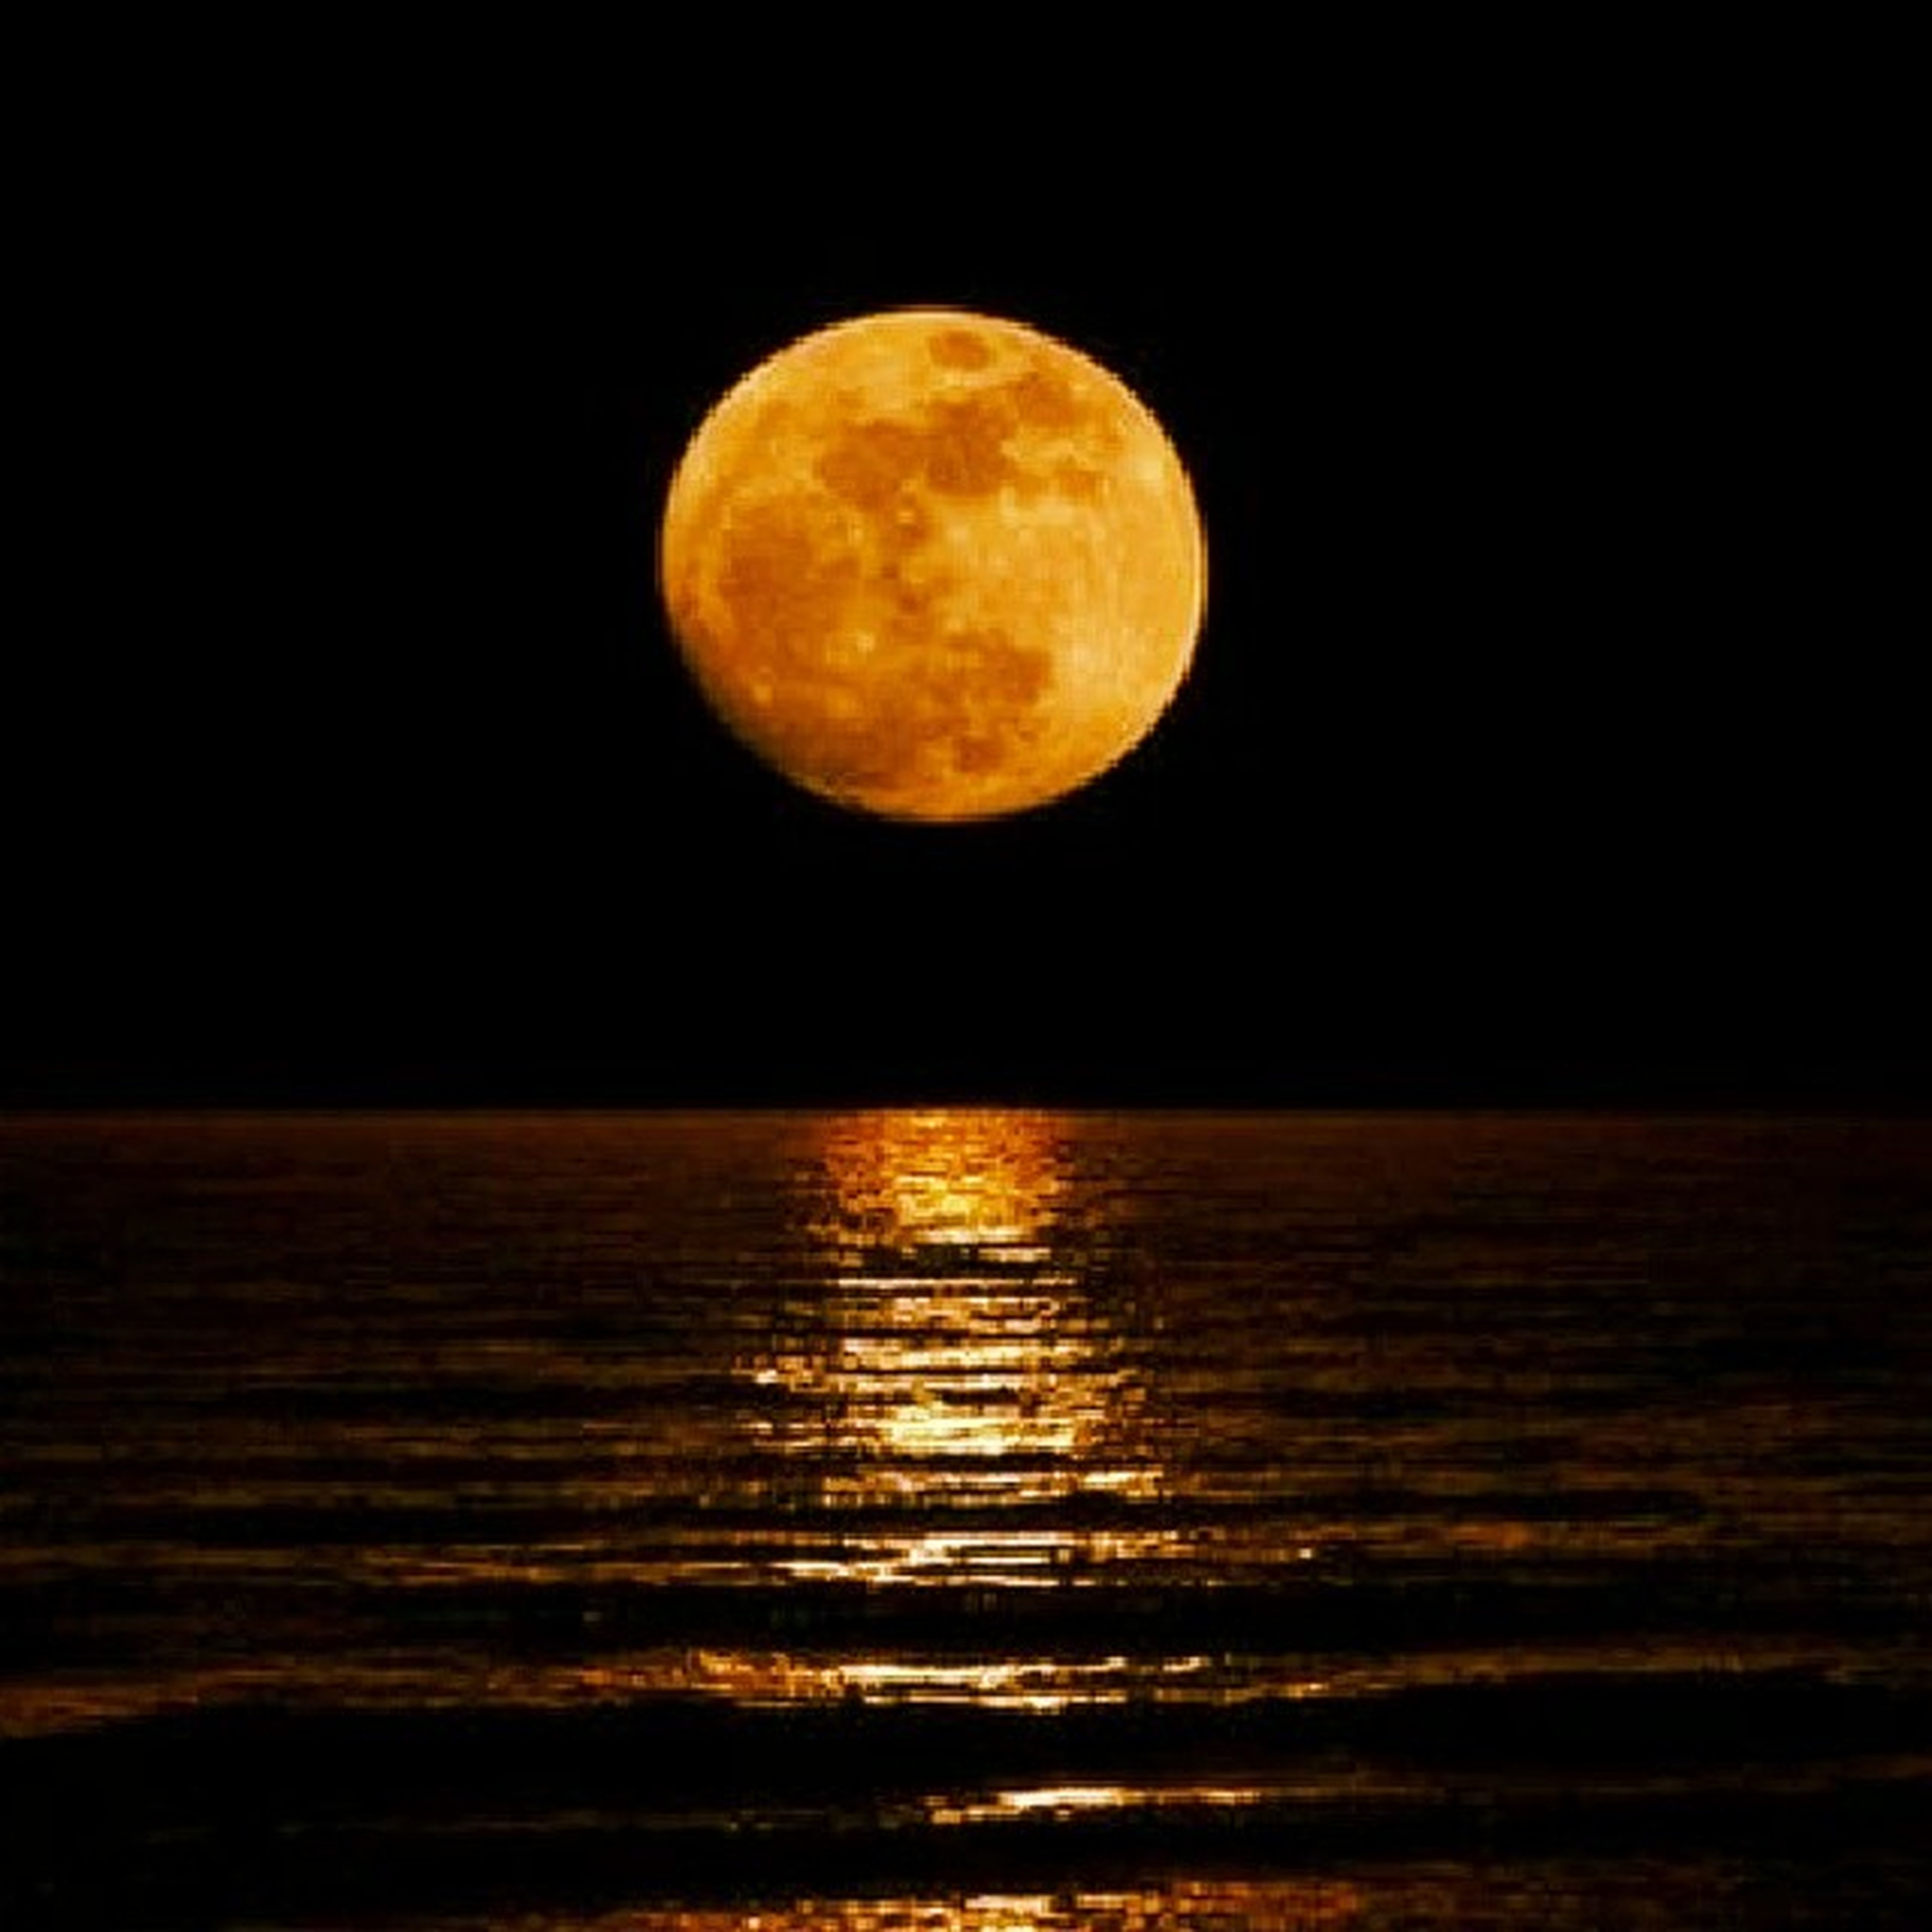 moon, night, tranquil scene, scenics, tranquility, astronomy, beauty in nature, full moon, water, planetary moon, nature, idyllic, circle, sky, dark, majestic, reflection, copy space, sea, waterfront